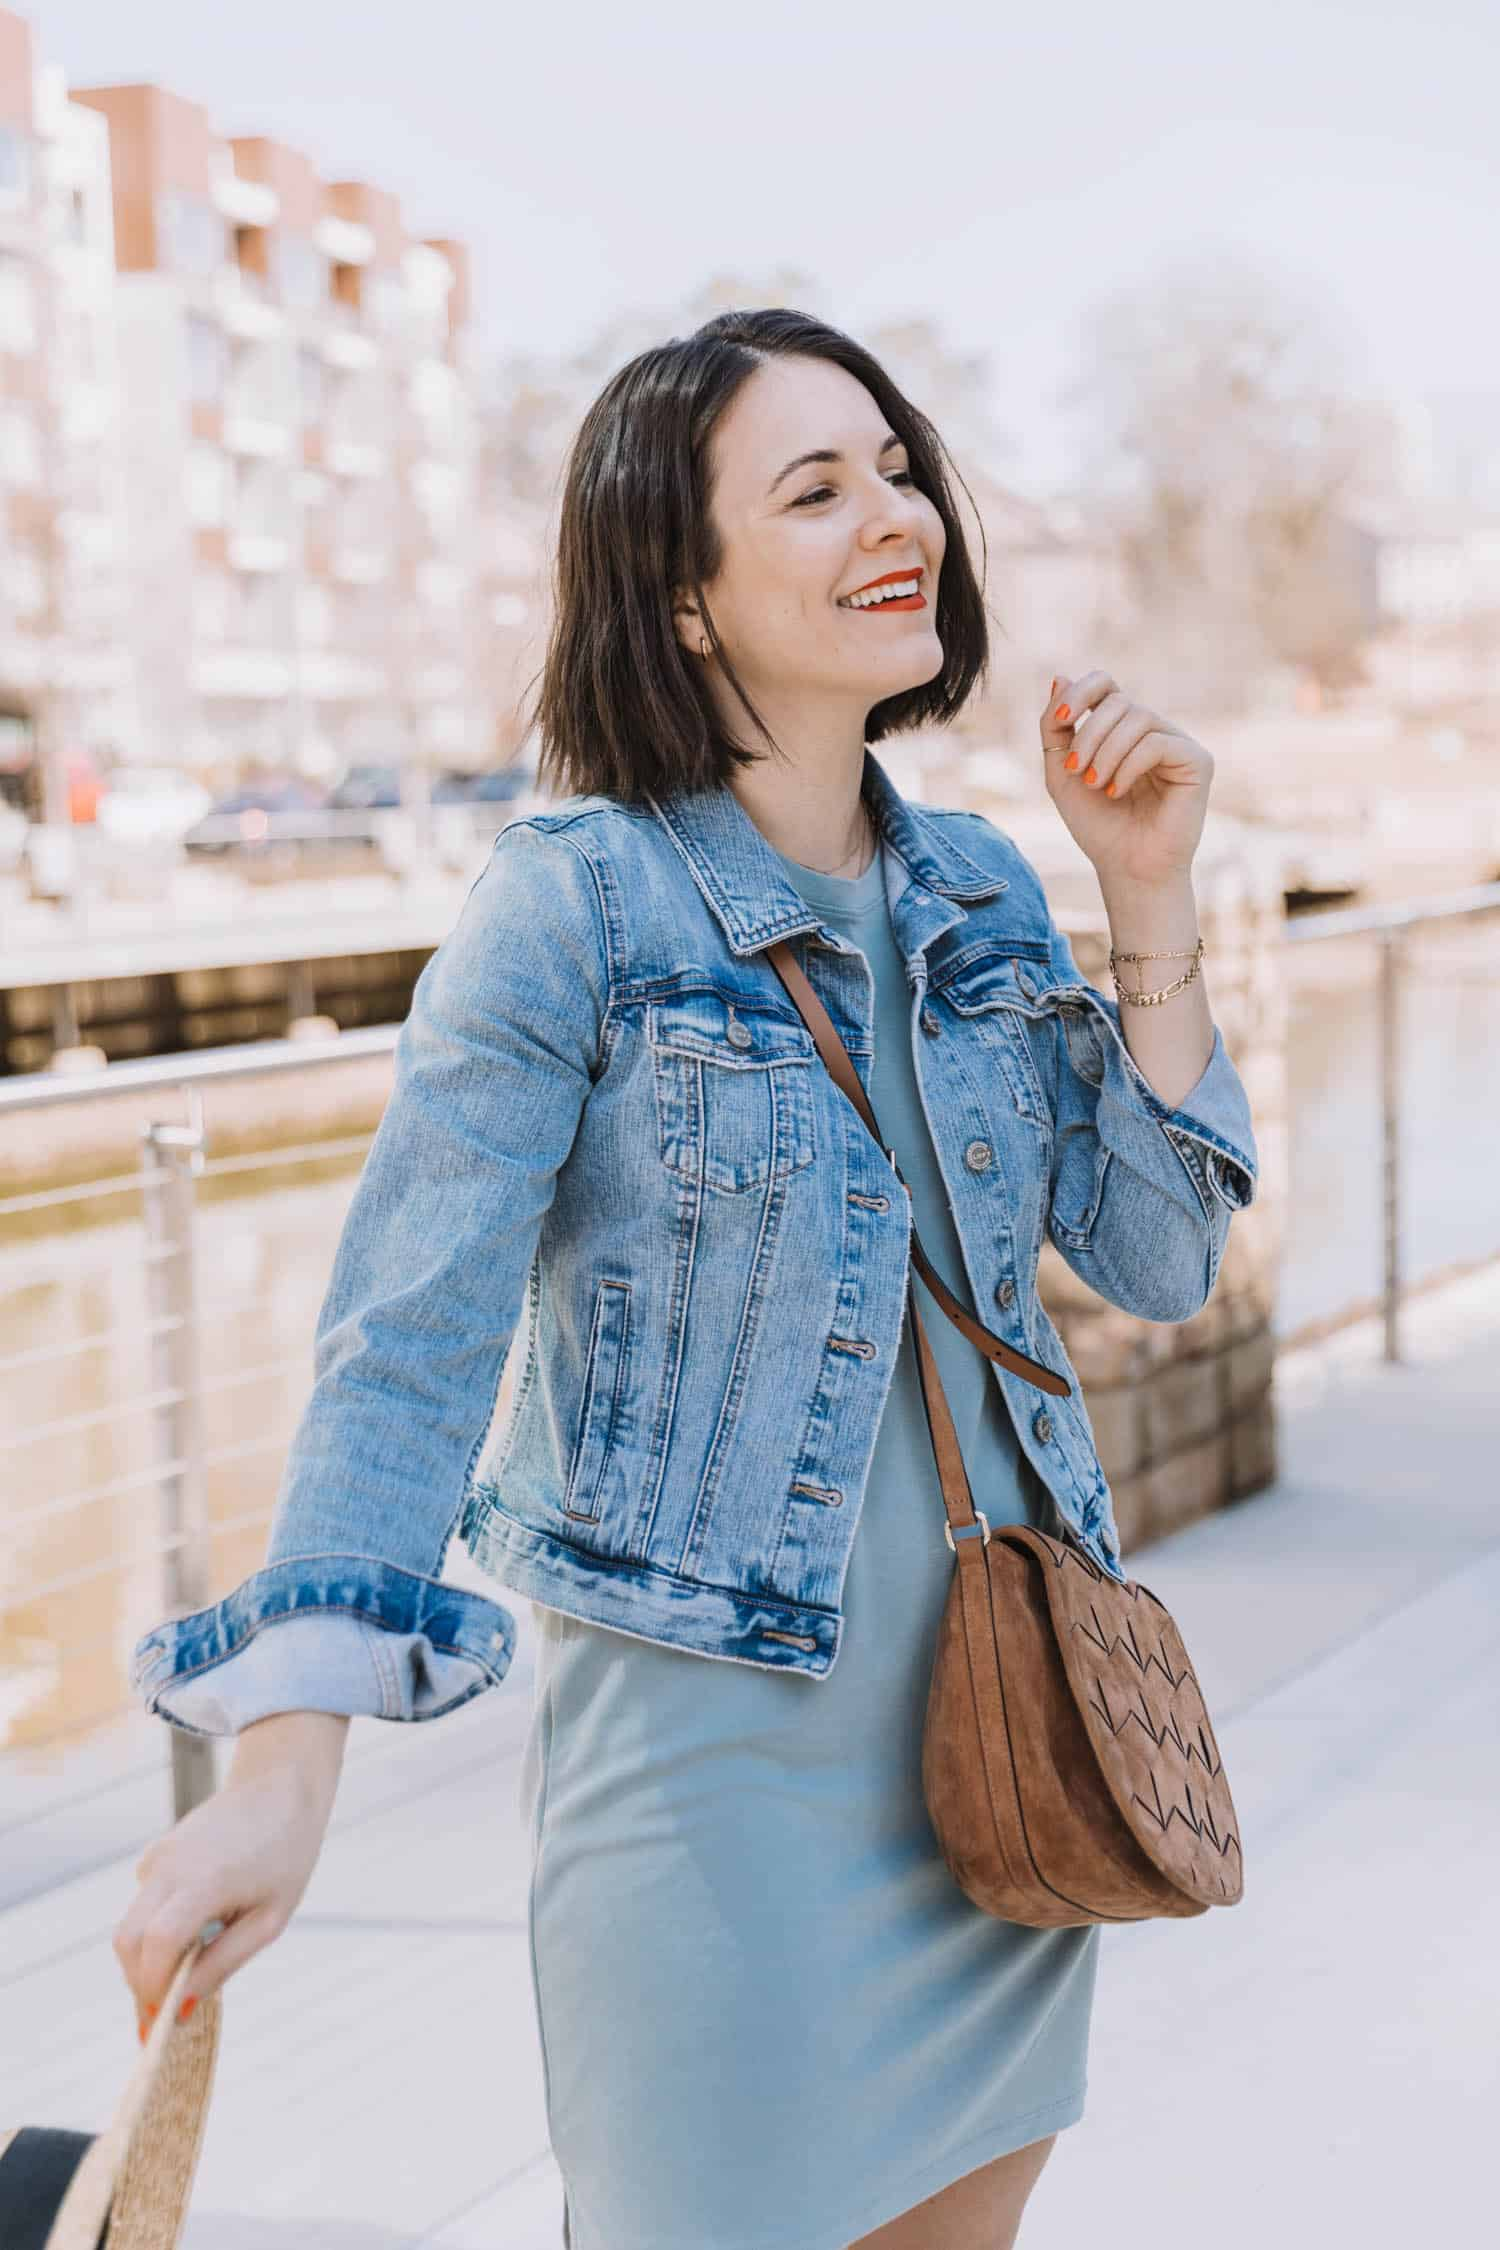 denim jacket and t-shirt dress outfit